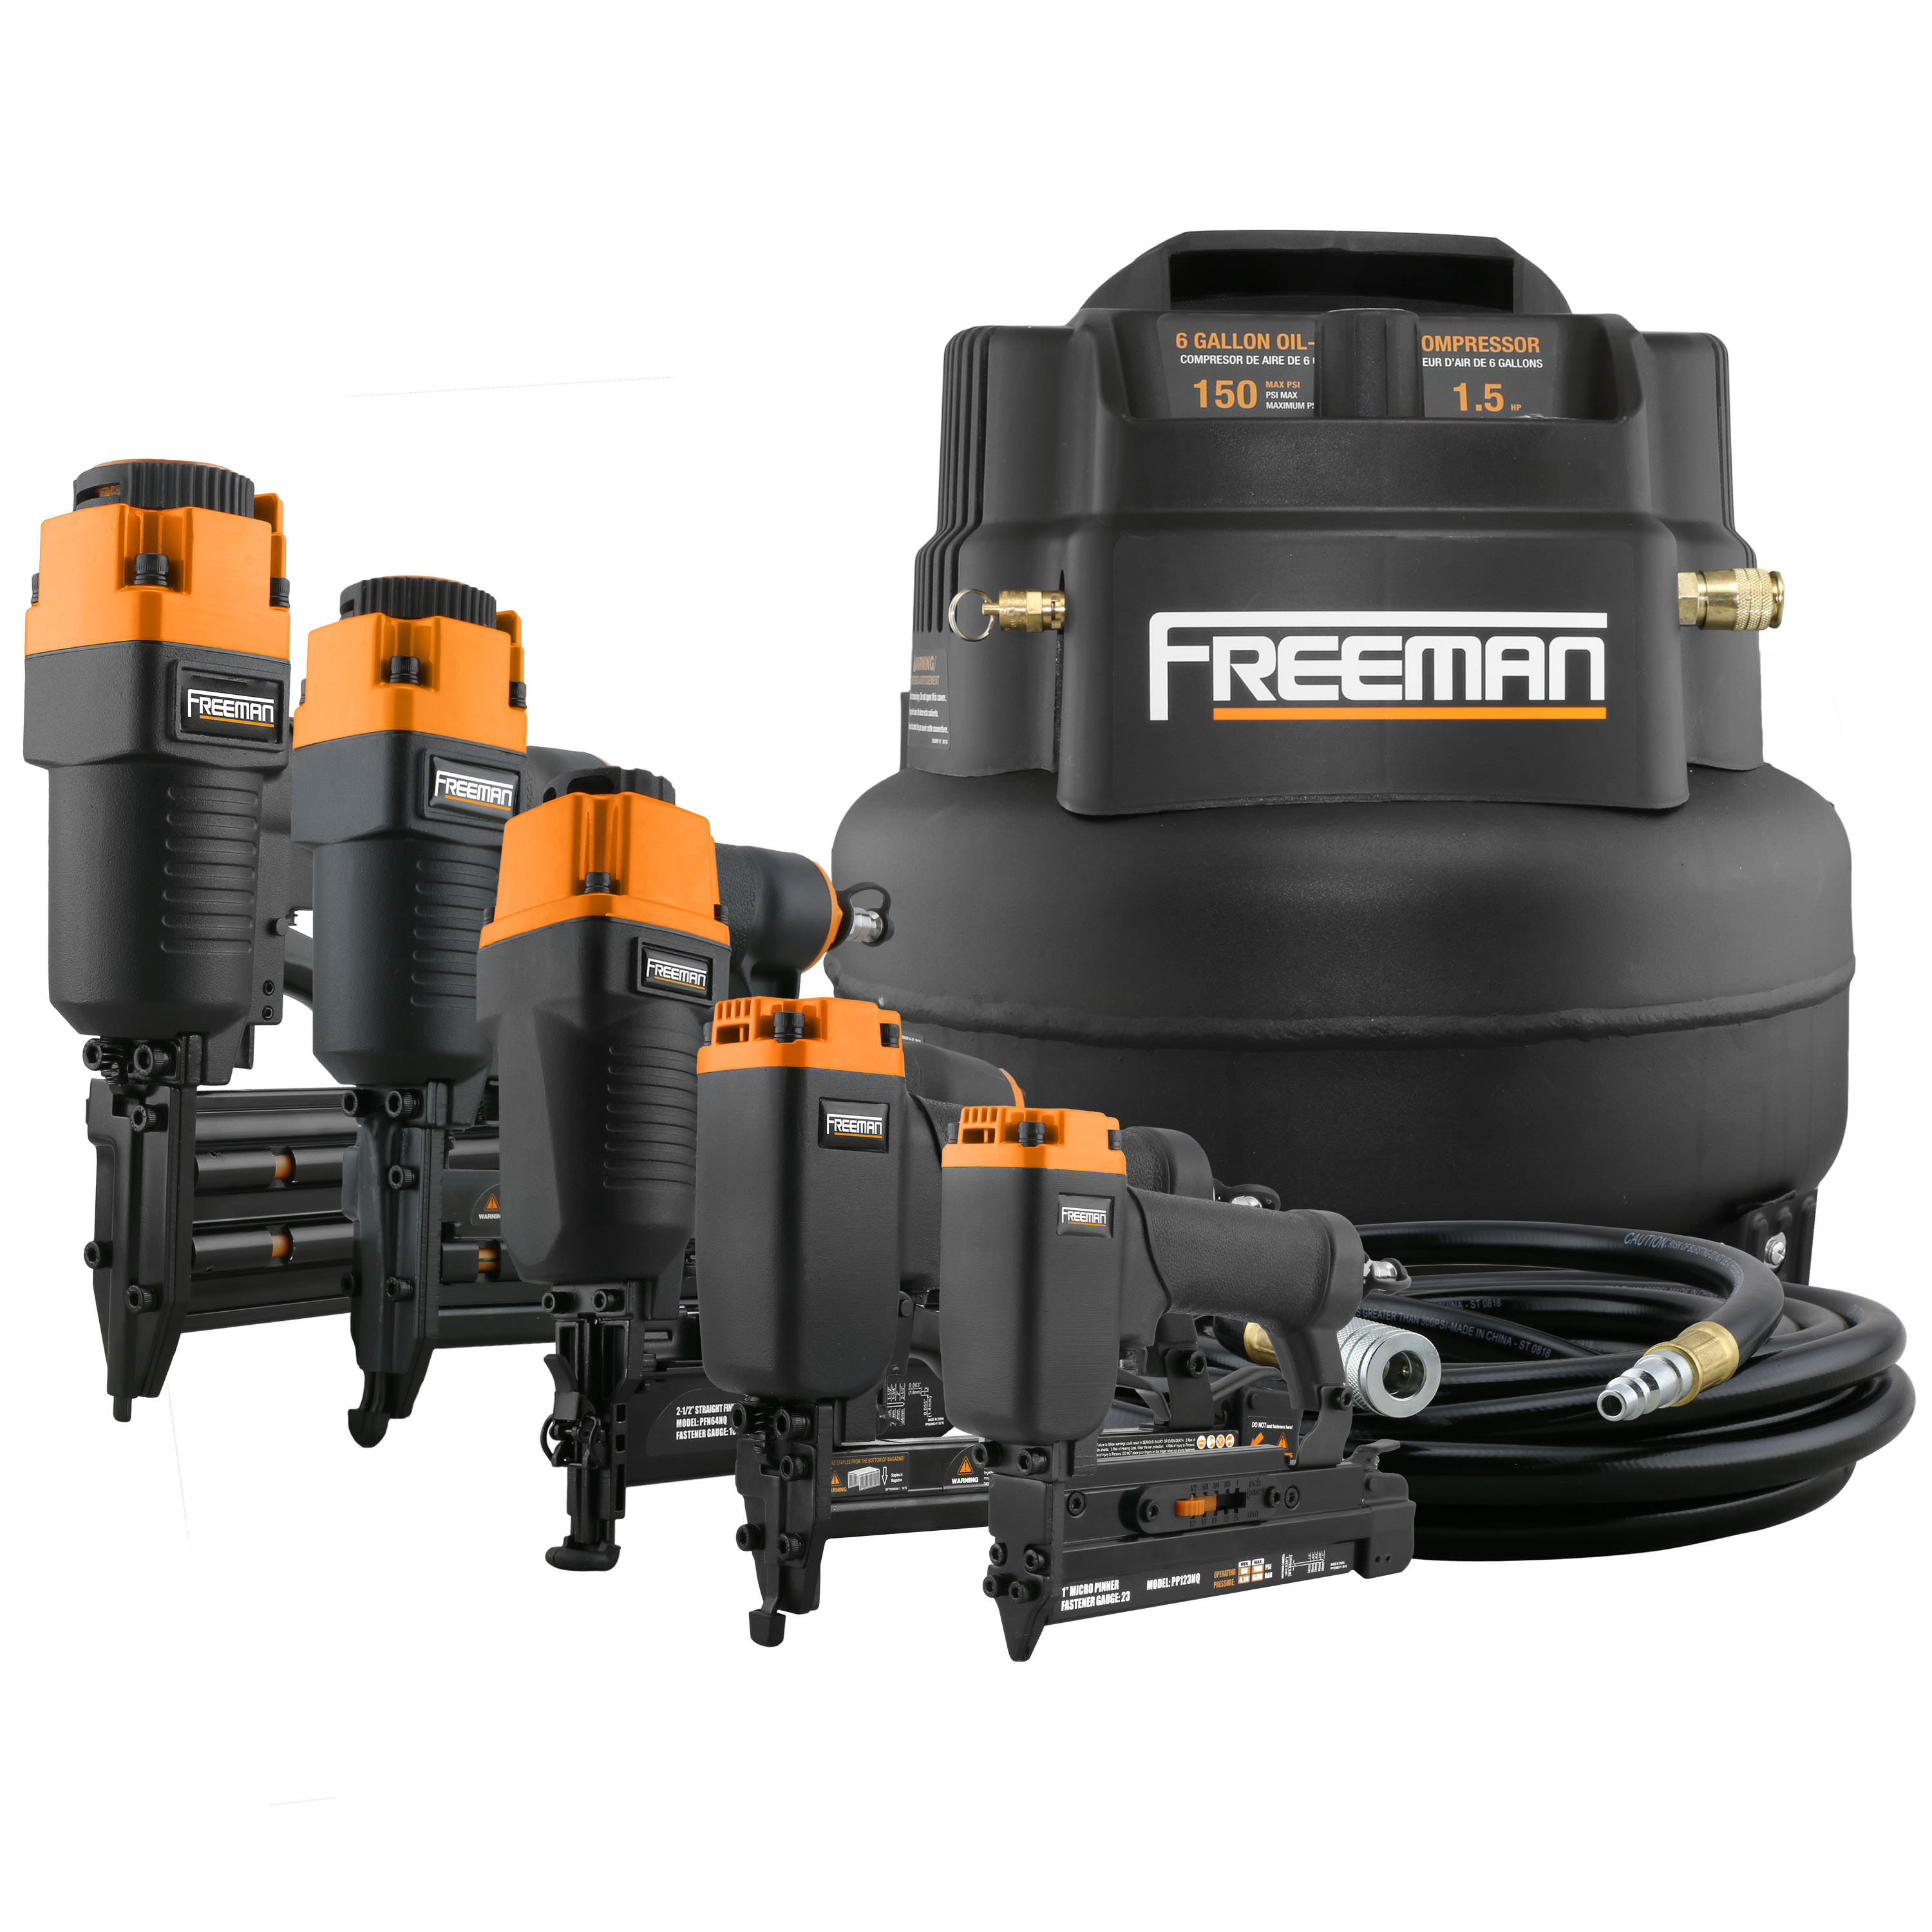 Freeman P5PCKW 5-Piece Nailer Kit w/ 6-Gallon Air Compressor, Accessories, and FREE Toolbelt